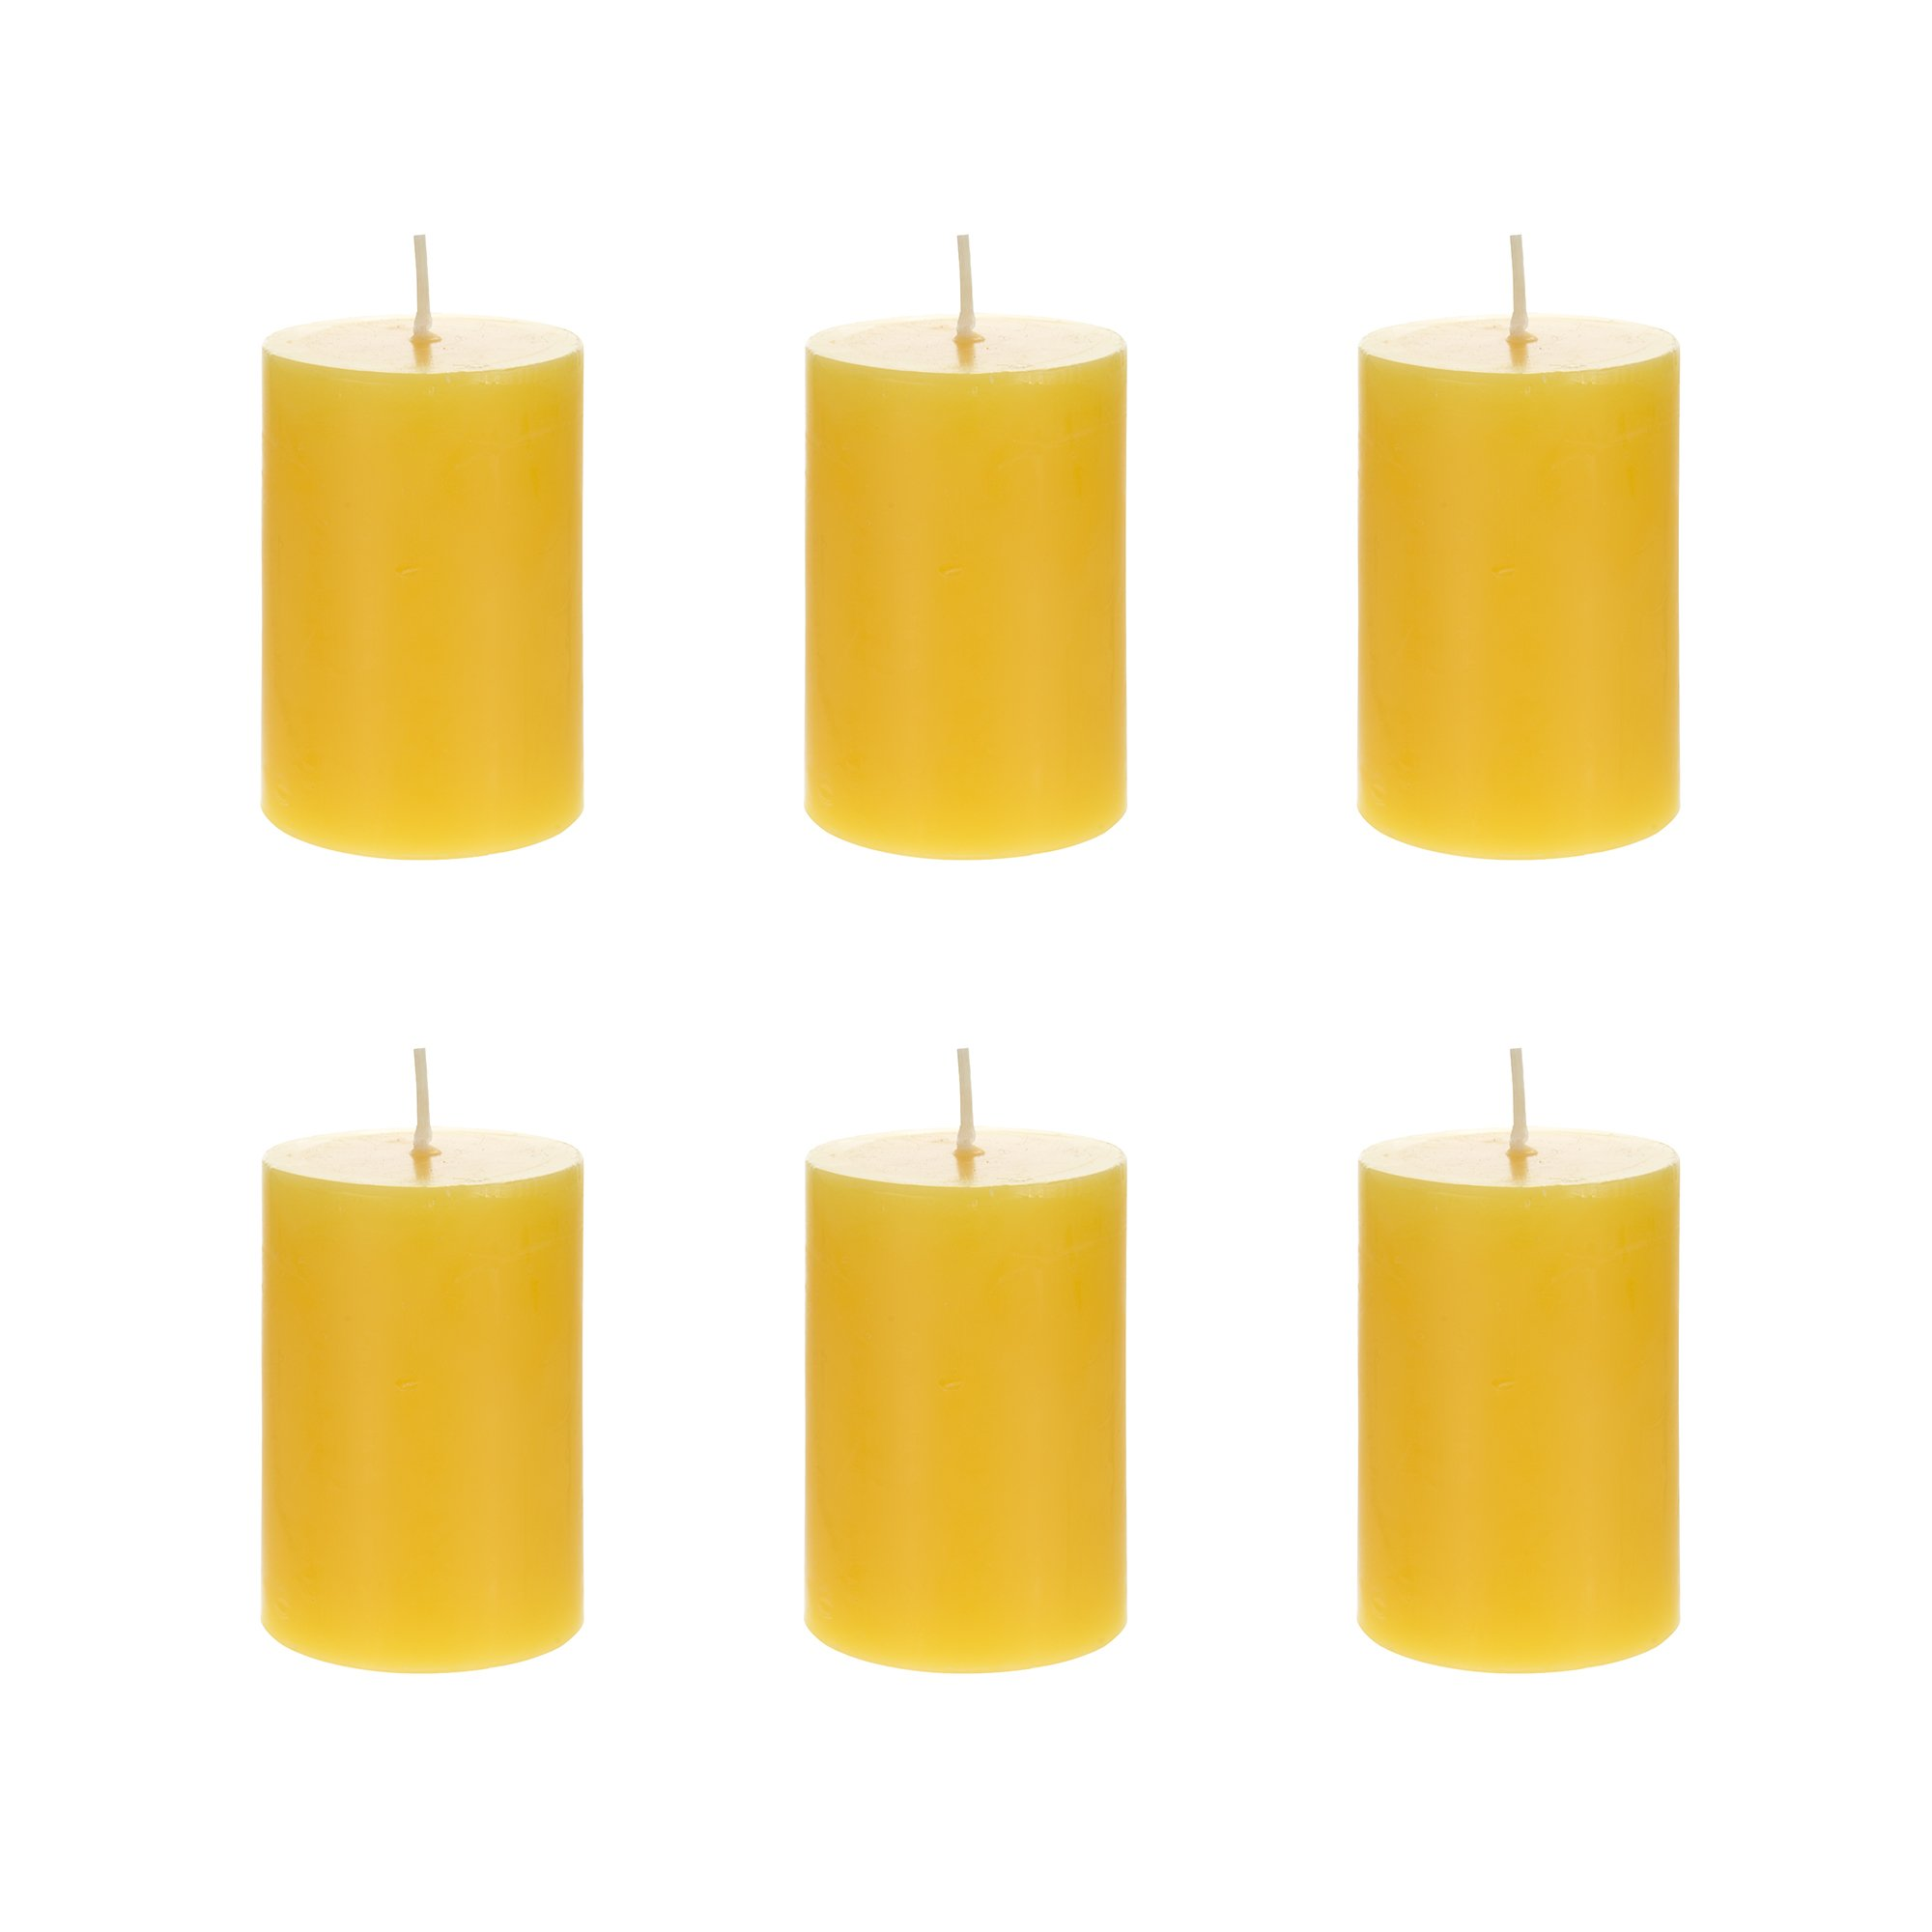 Mega Candles 6 pcs Citronella Round Pillar Candle | Hand Poured Paraffin Wax Candles 2'' x 3'' | Bug Repellent Candles For Indoor And Outdoor Use | Everyday Candles For Mosquitoes And Insects